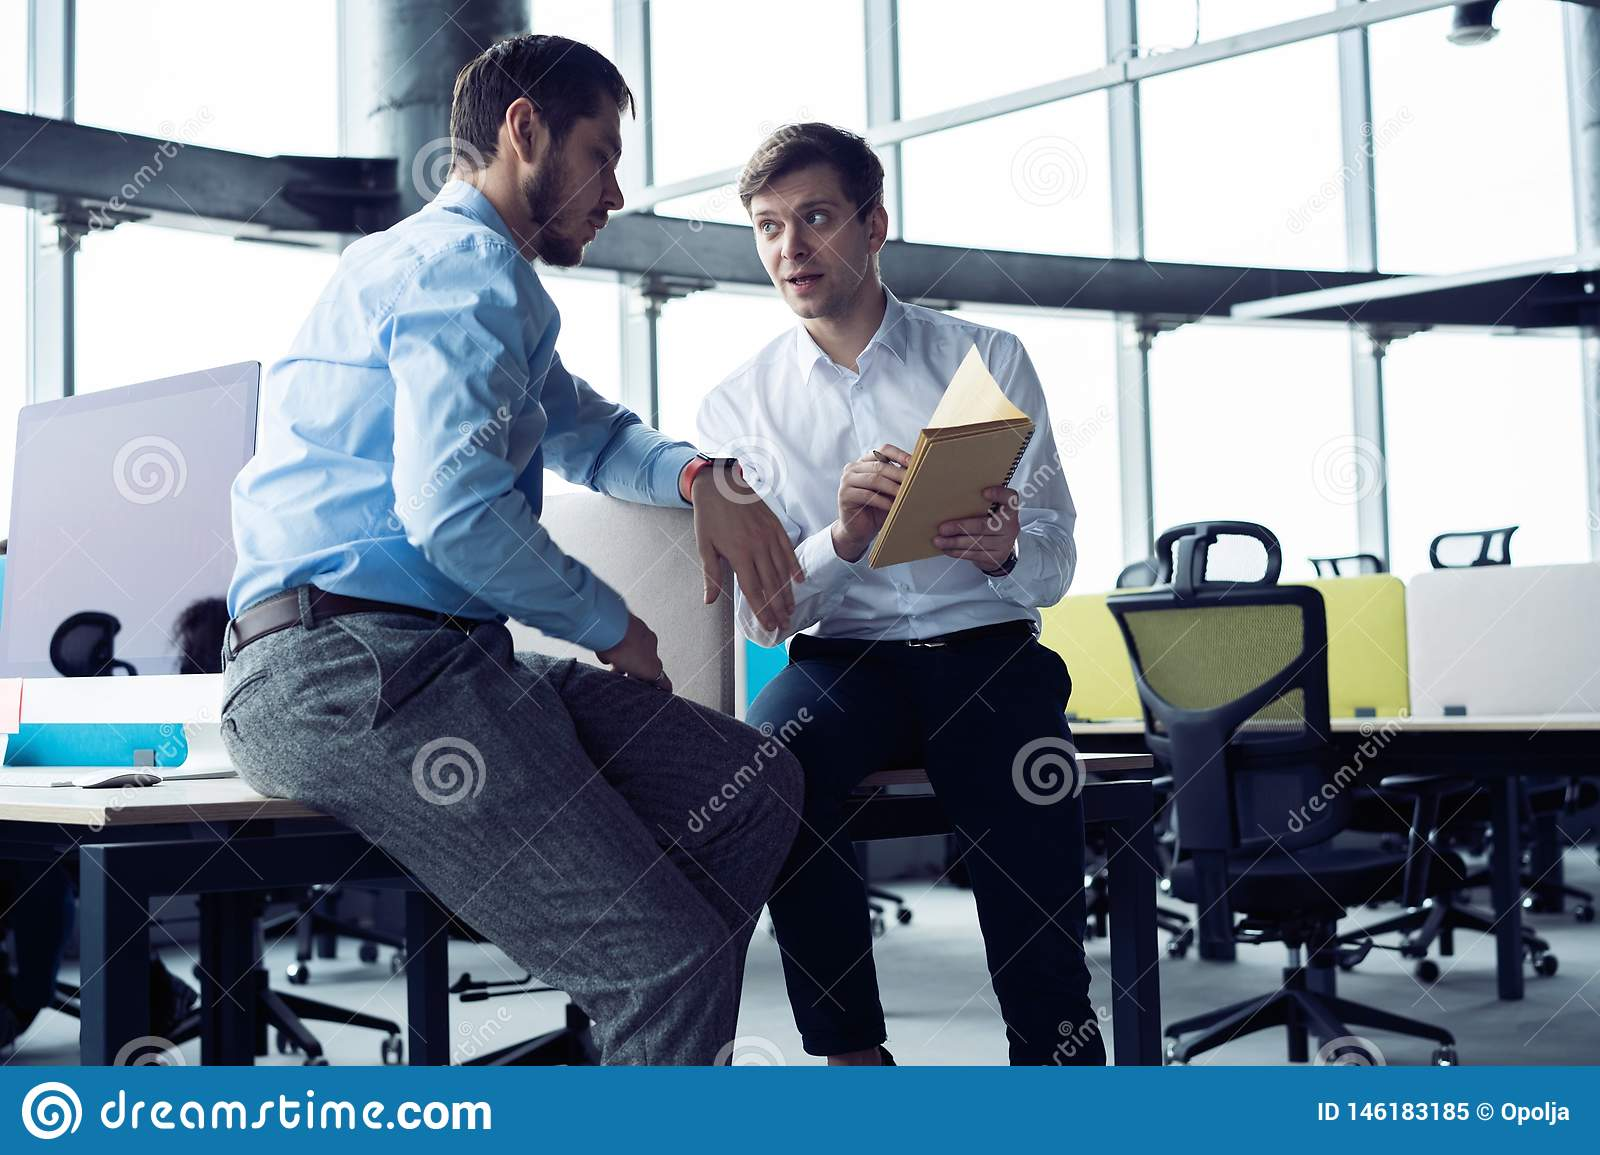 Group of young entrepreneurs are looking for a business solution during work process at office.Business people meeting